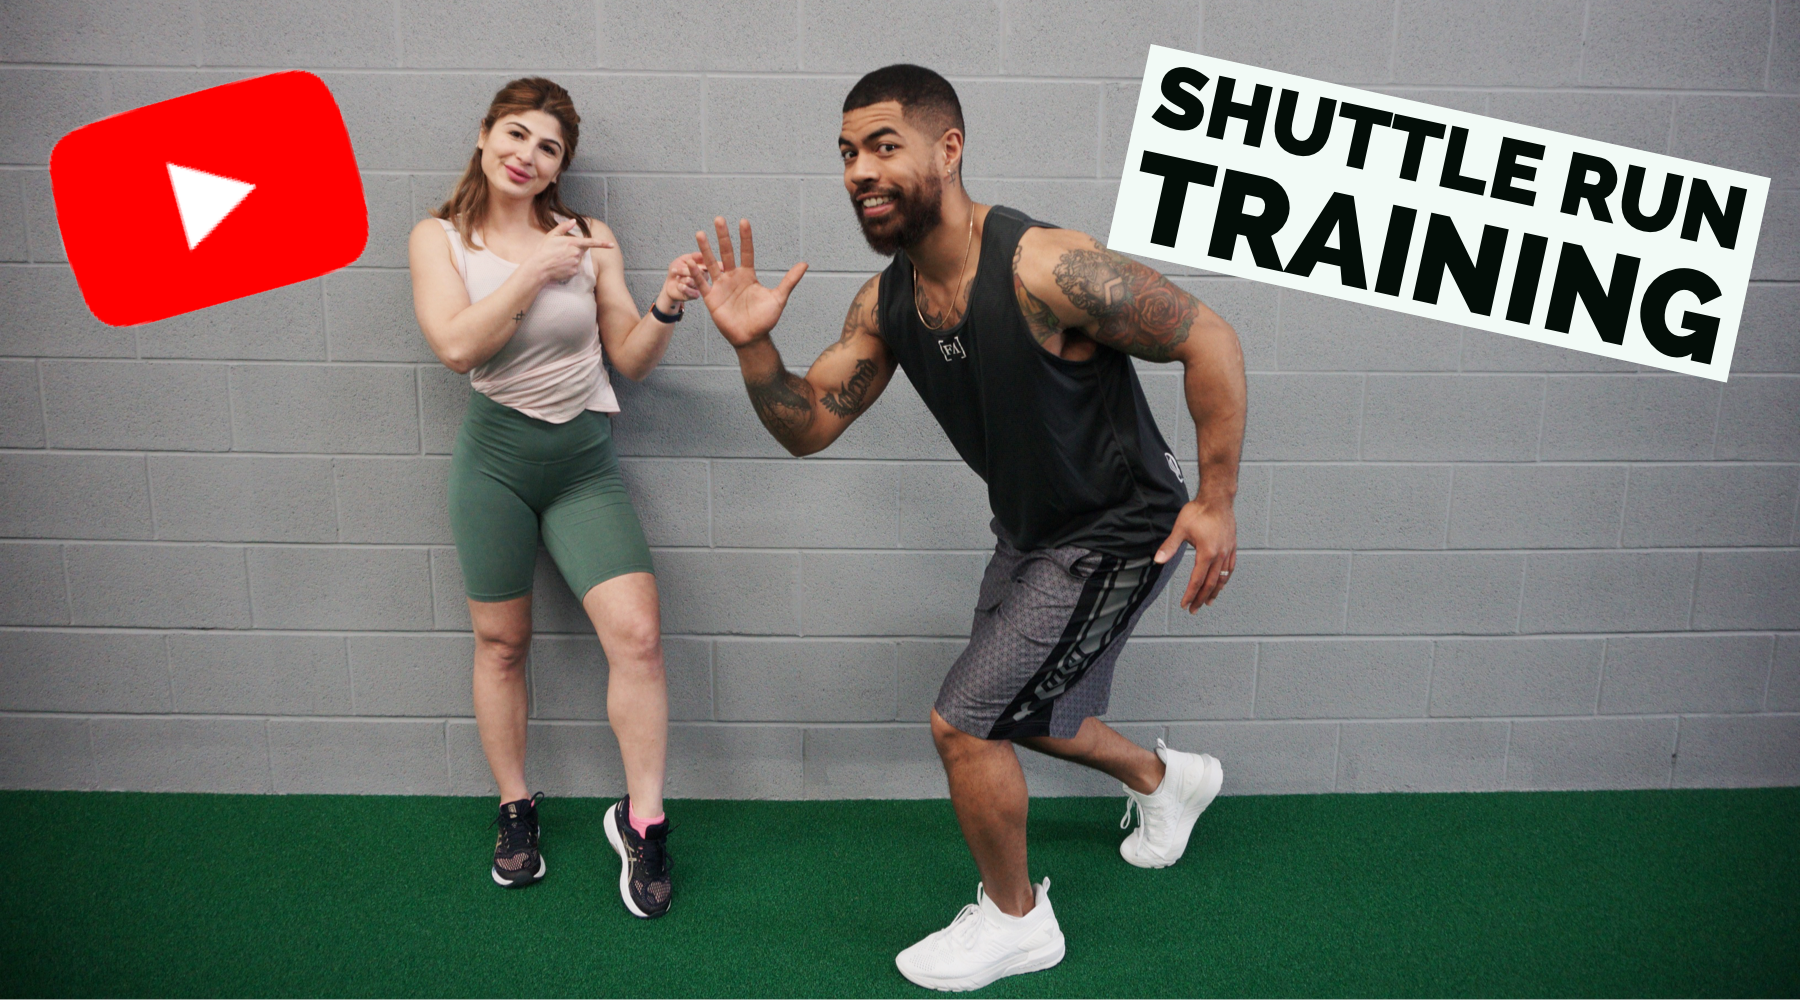 How to train for your shuttle run with Forever Aesthetic | 5 Drills